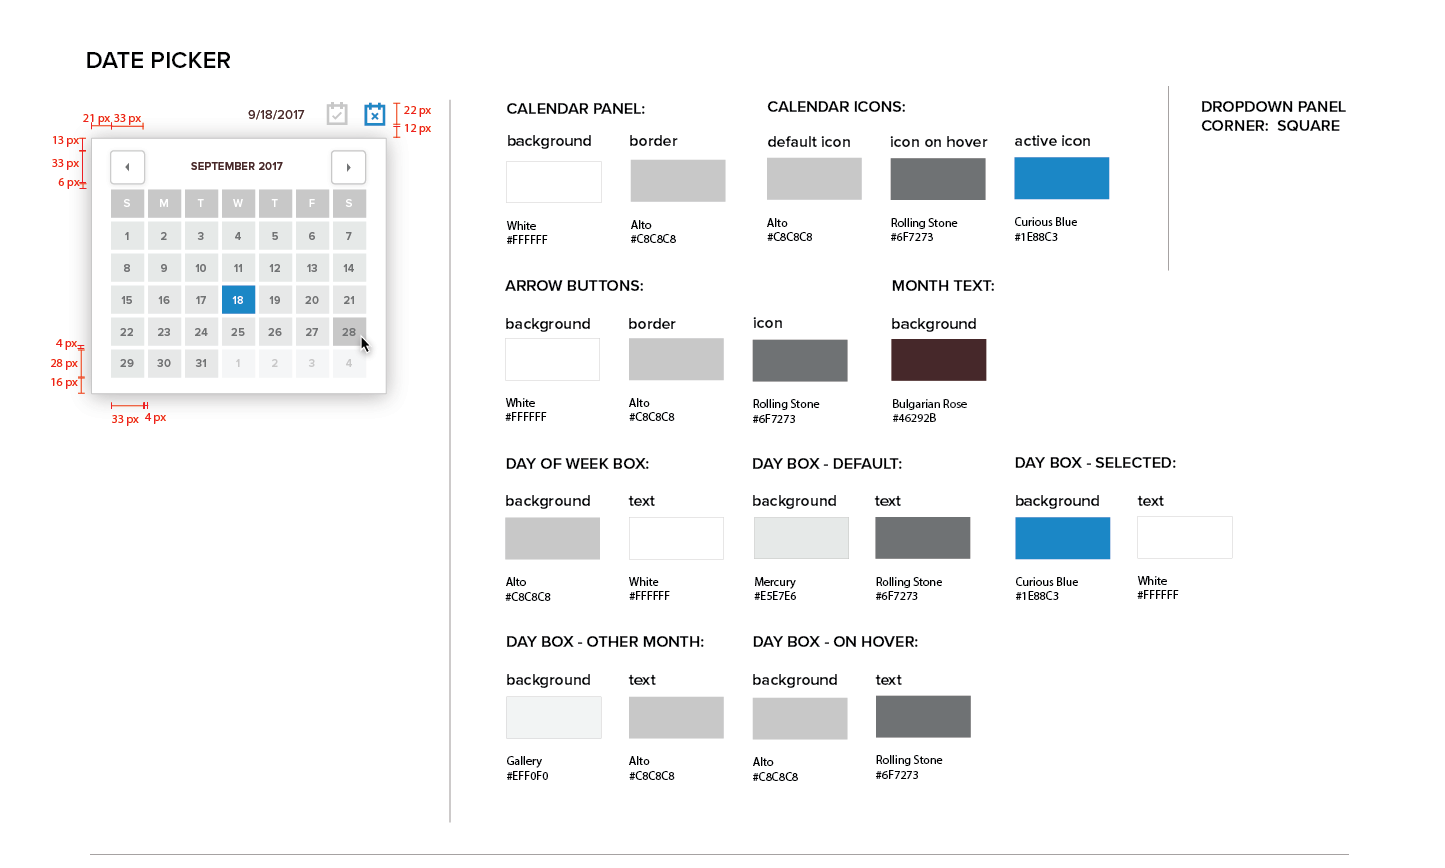 Persona Bar Style Guide - Date Picker